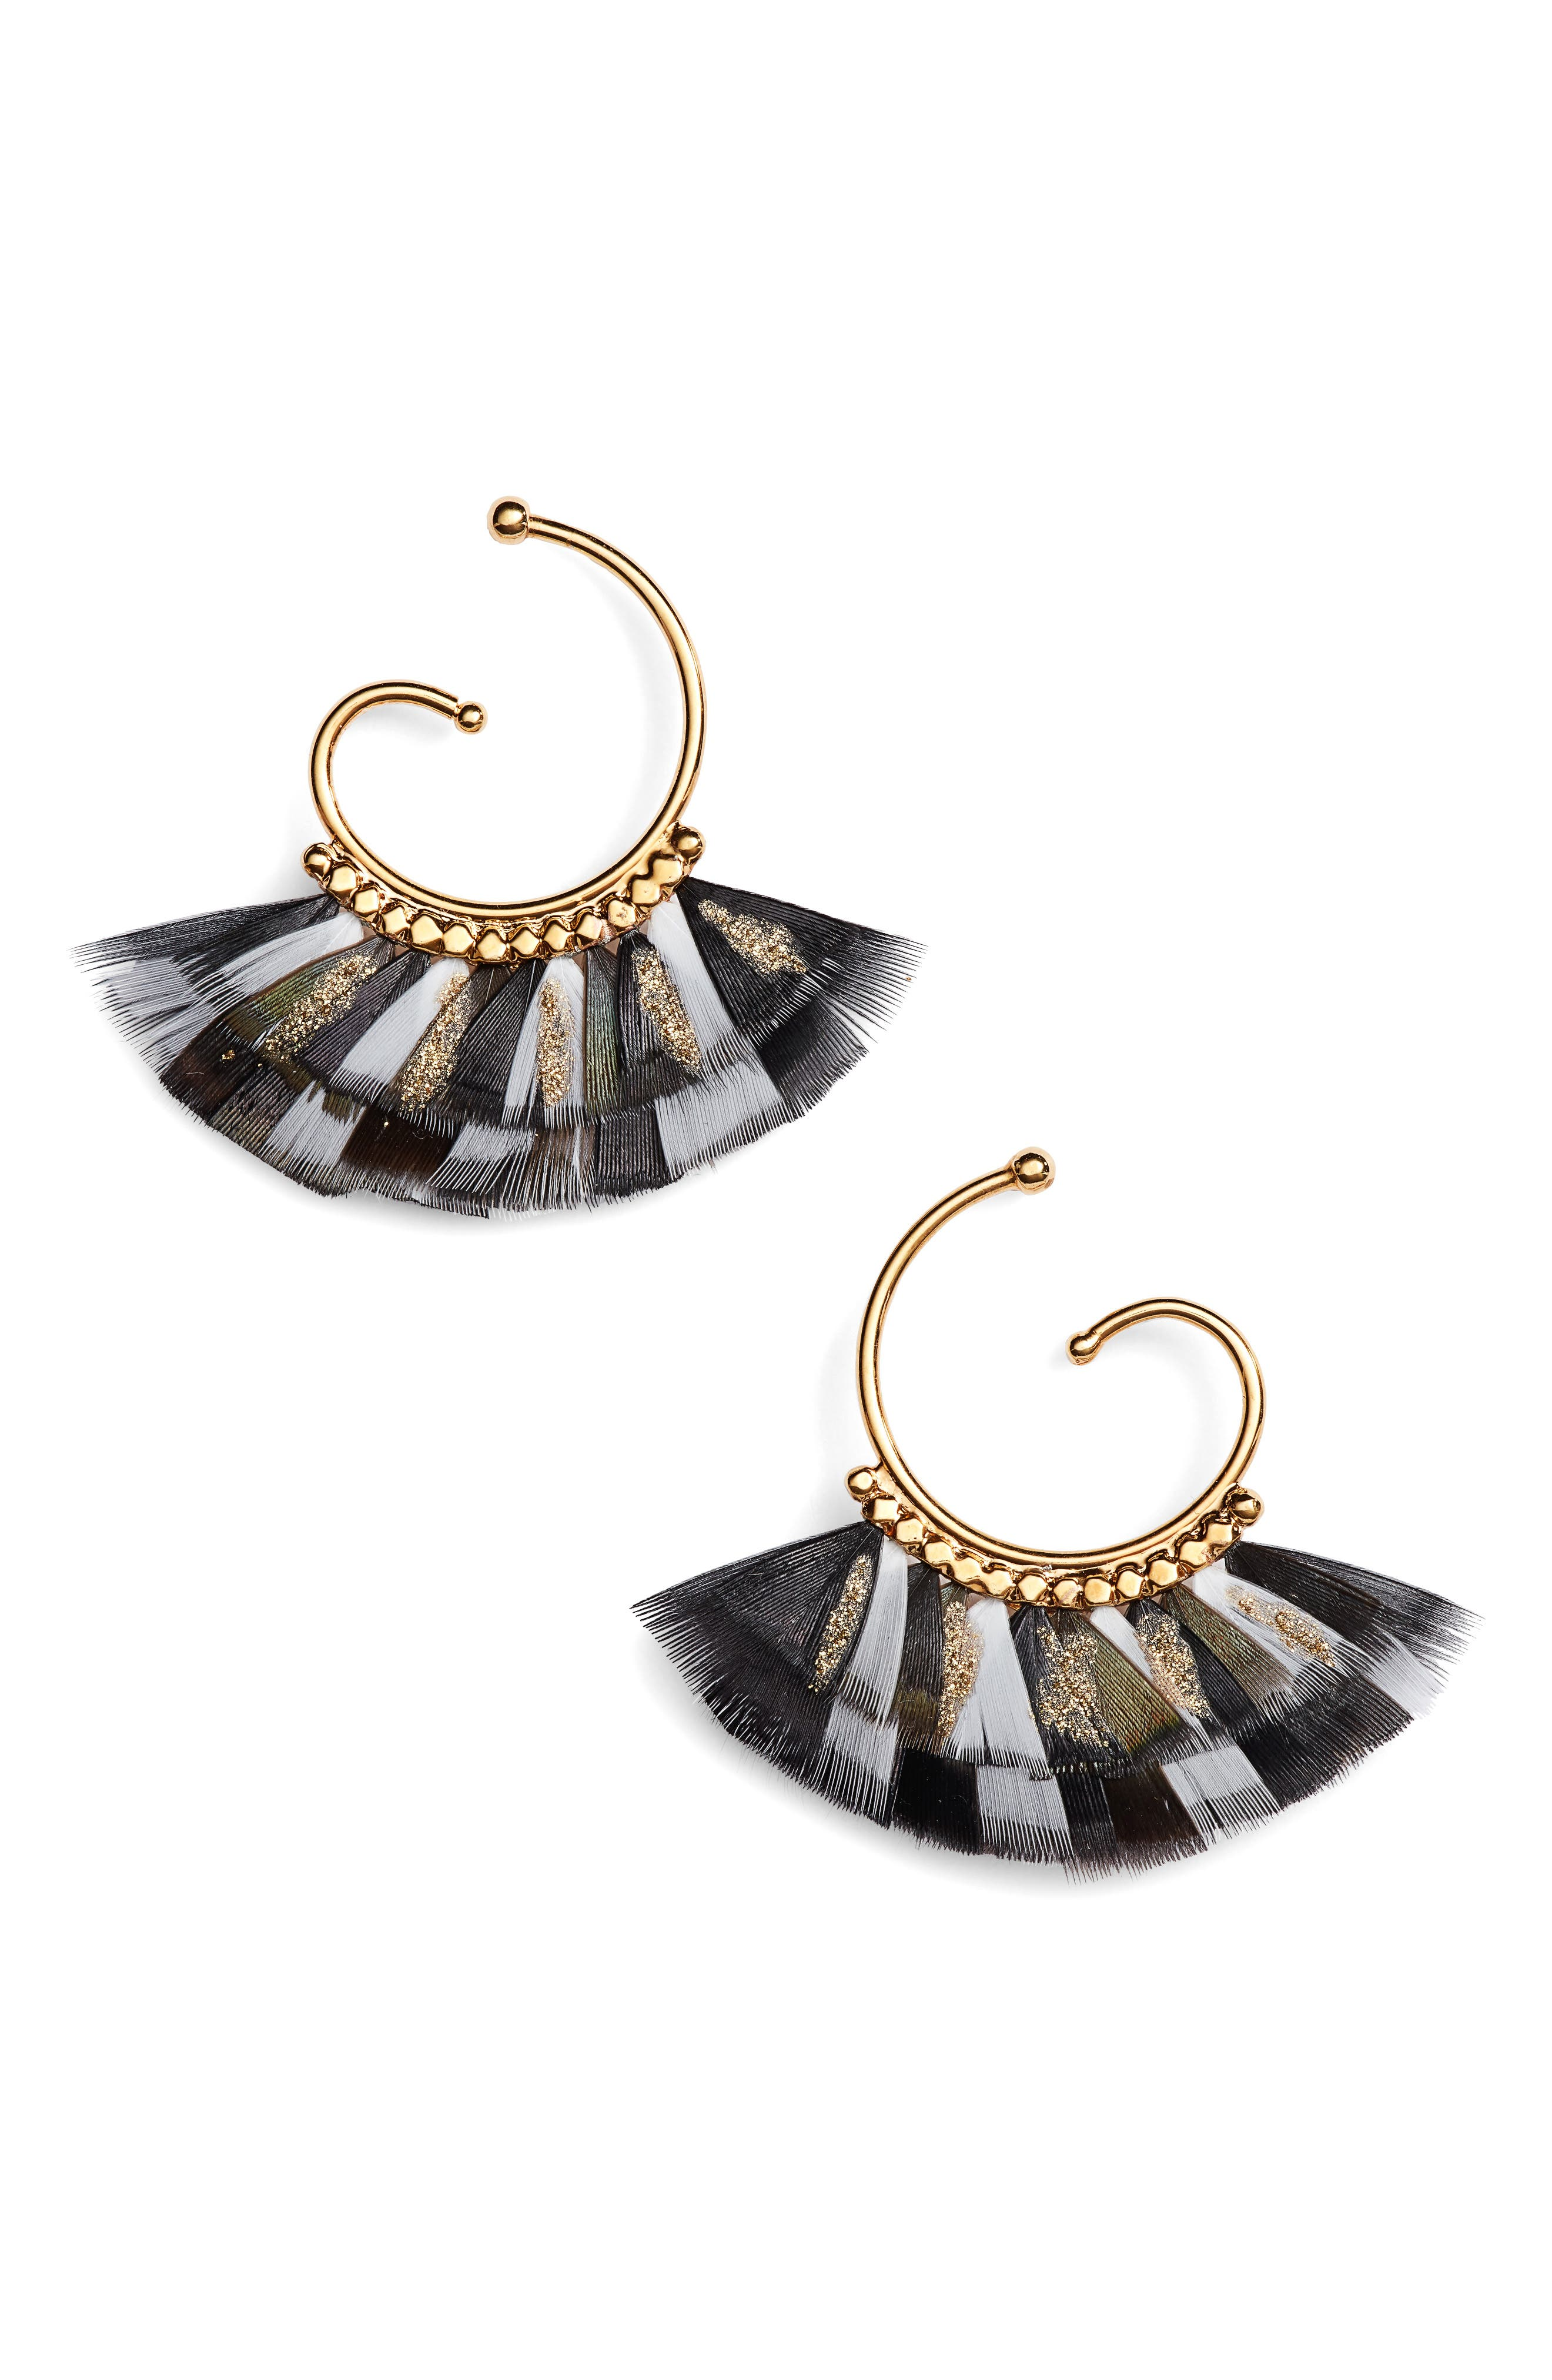 Small Buzios Feather Earrings,                             Main thumbnail 1, color,                             BLACK/ GOLD